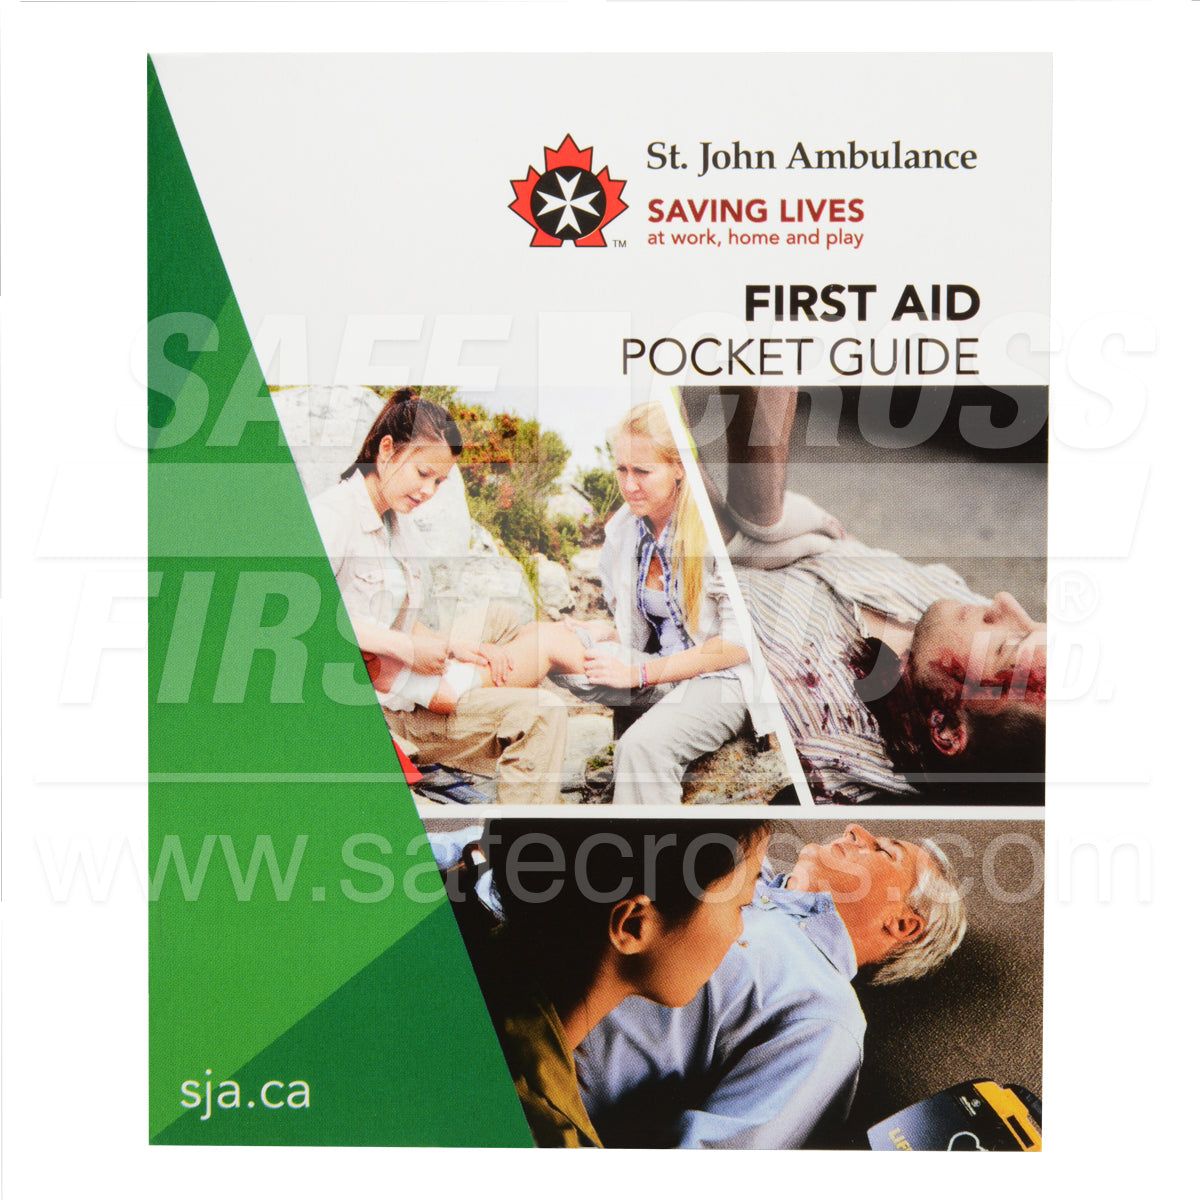 St. John Ambulance Pocket Guide©